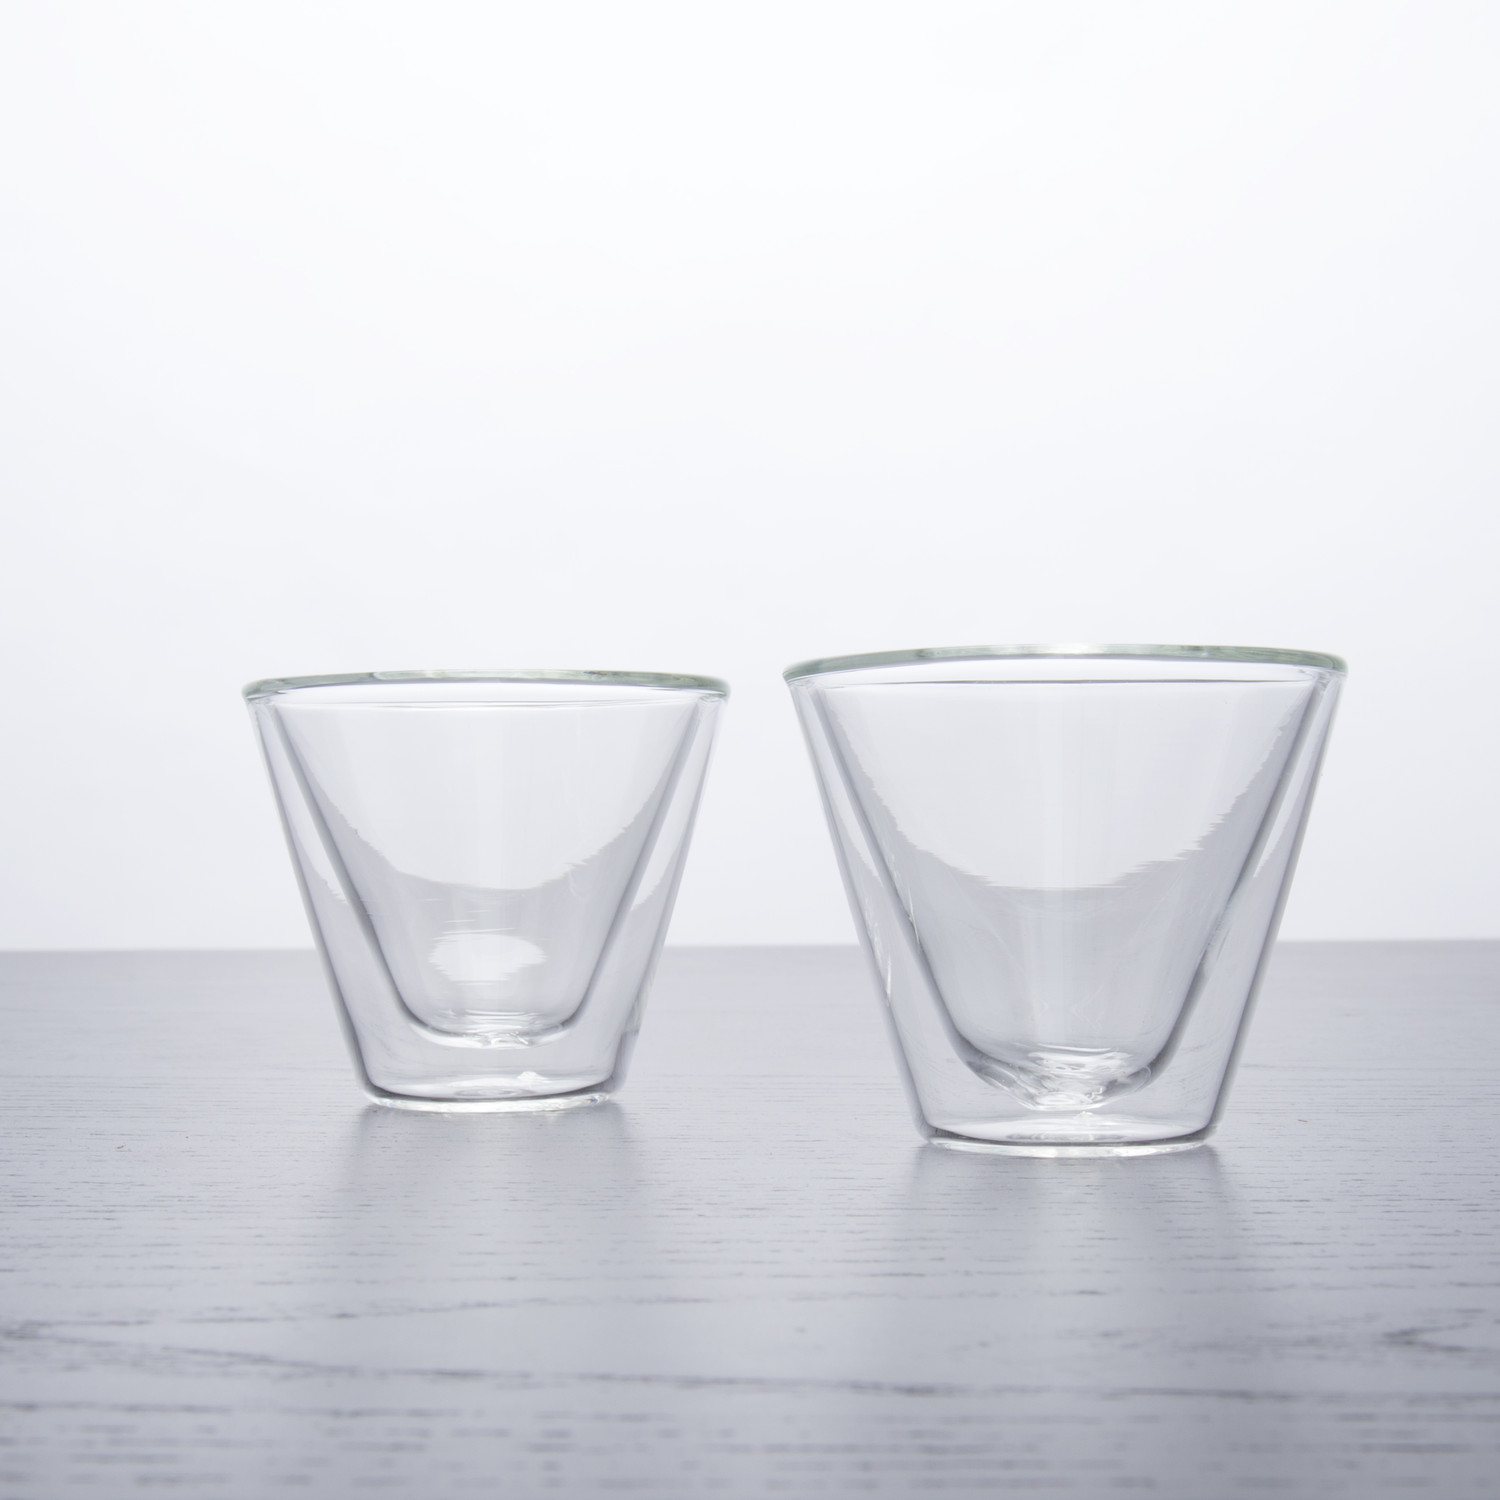 double wall shot glasses  oz set of   tryeh  touch of modern - double wall shot glasses  oz set of